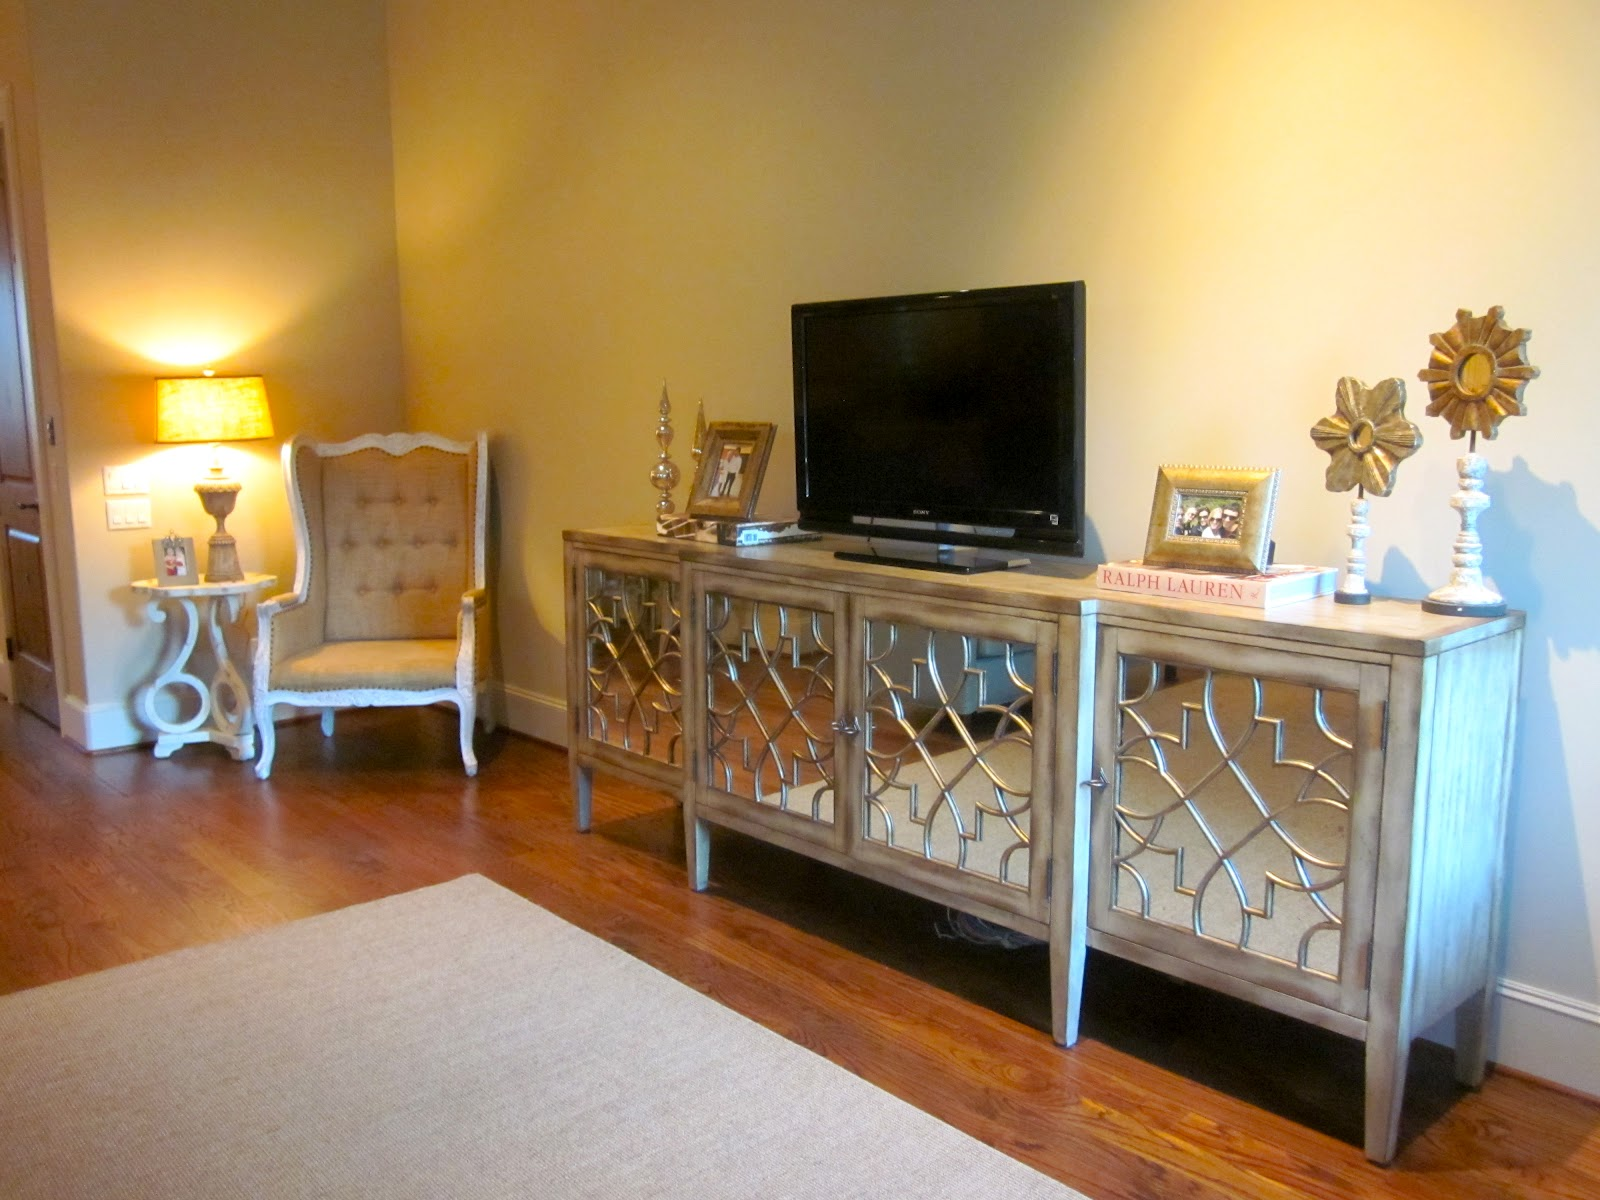 Sadie stella favorite room feature the peak of tres chic - Dresser as tv stand in living room ...